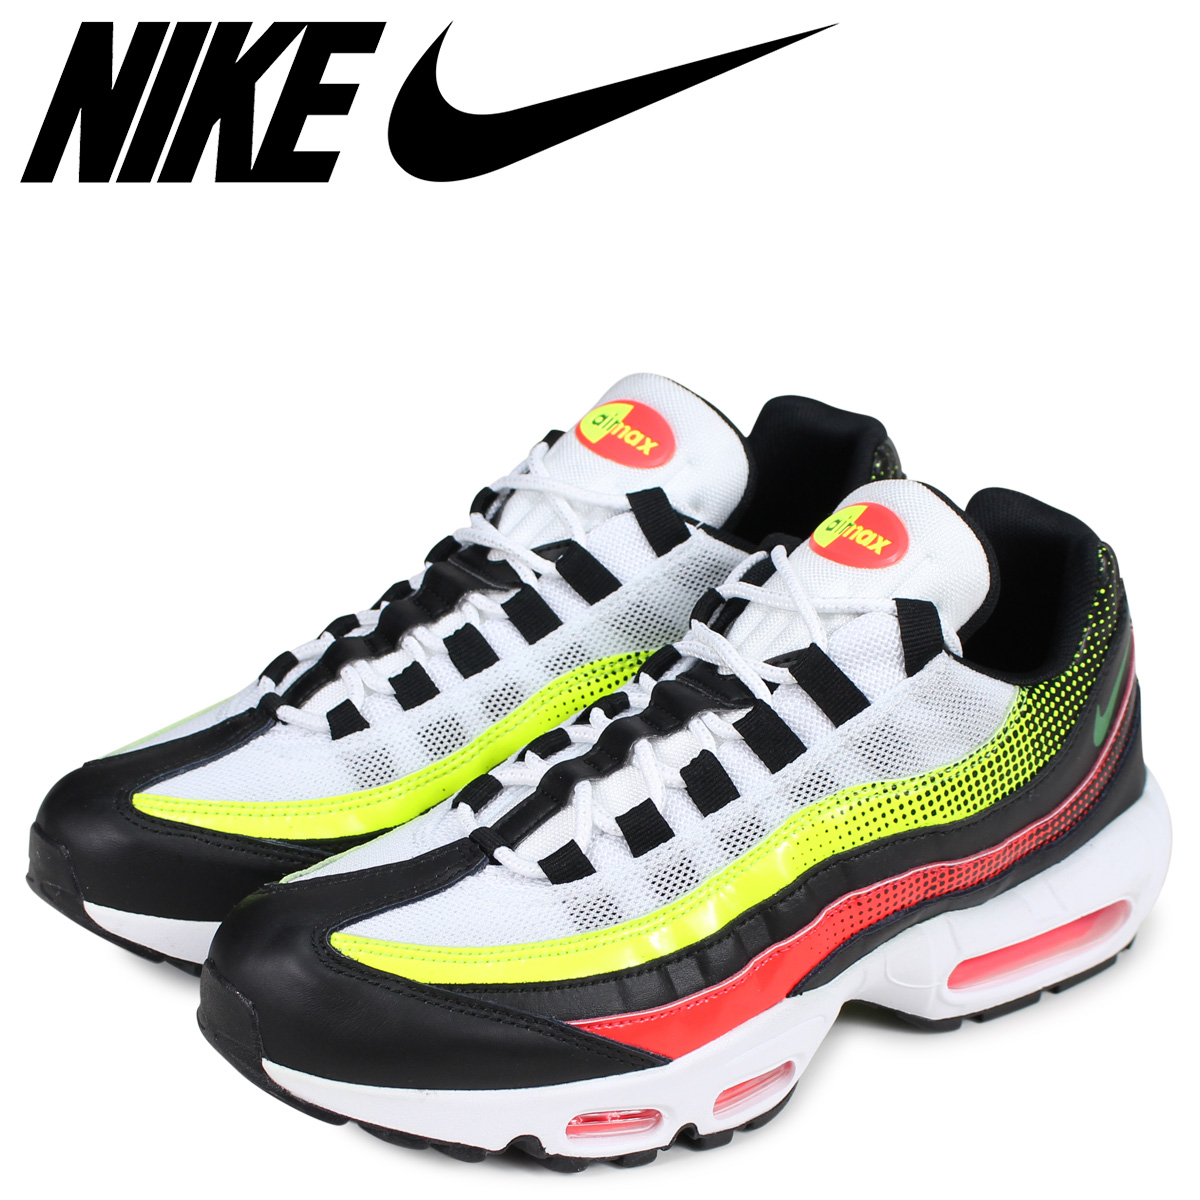 sale retailer 80749 9add3 NIKE Kie Ney AMAX 95 sneakers men AIR MAX 95 SE black black AJ2018-004   load planned Shinnyu load in reservation product 4 19 containing